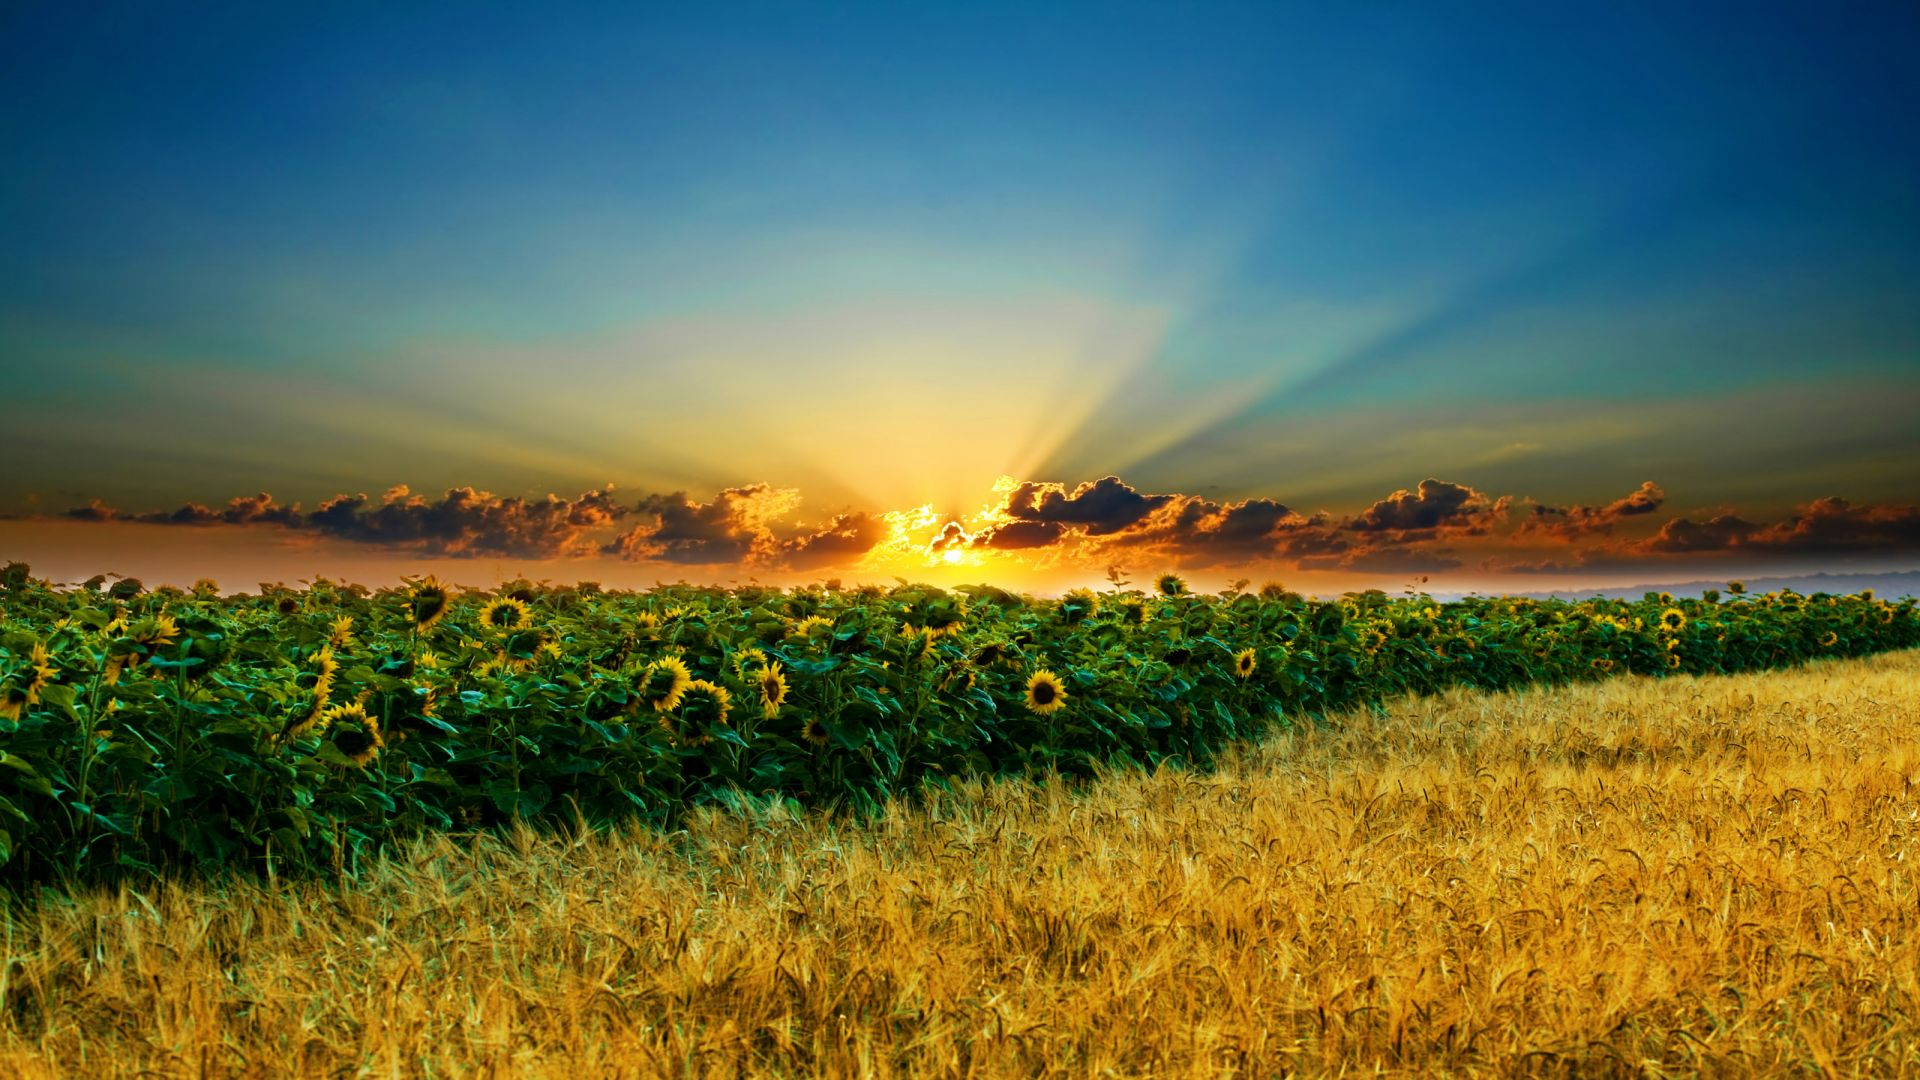 Sunshine Over The Sunflower Field Desktop Wallpaper